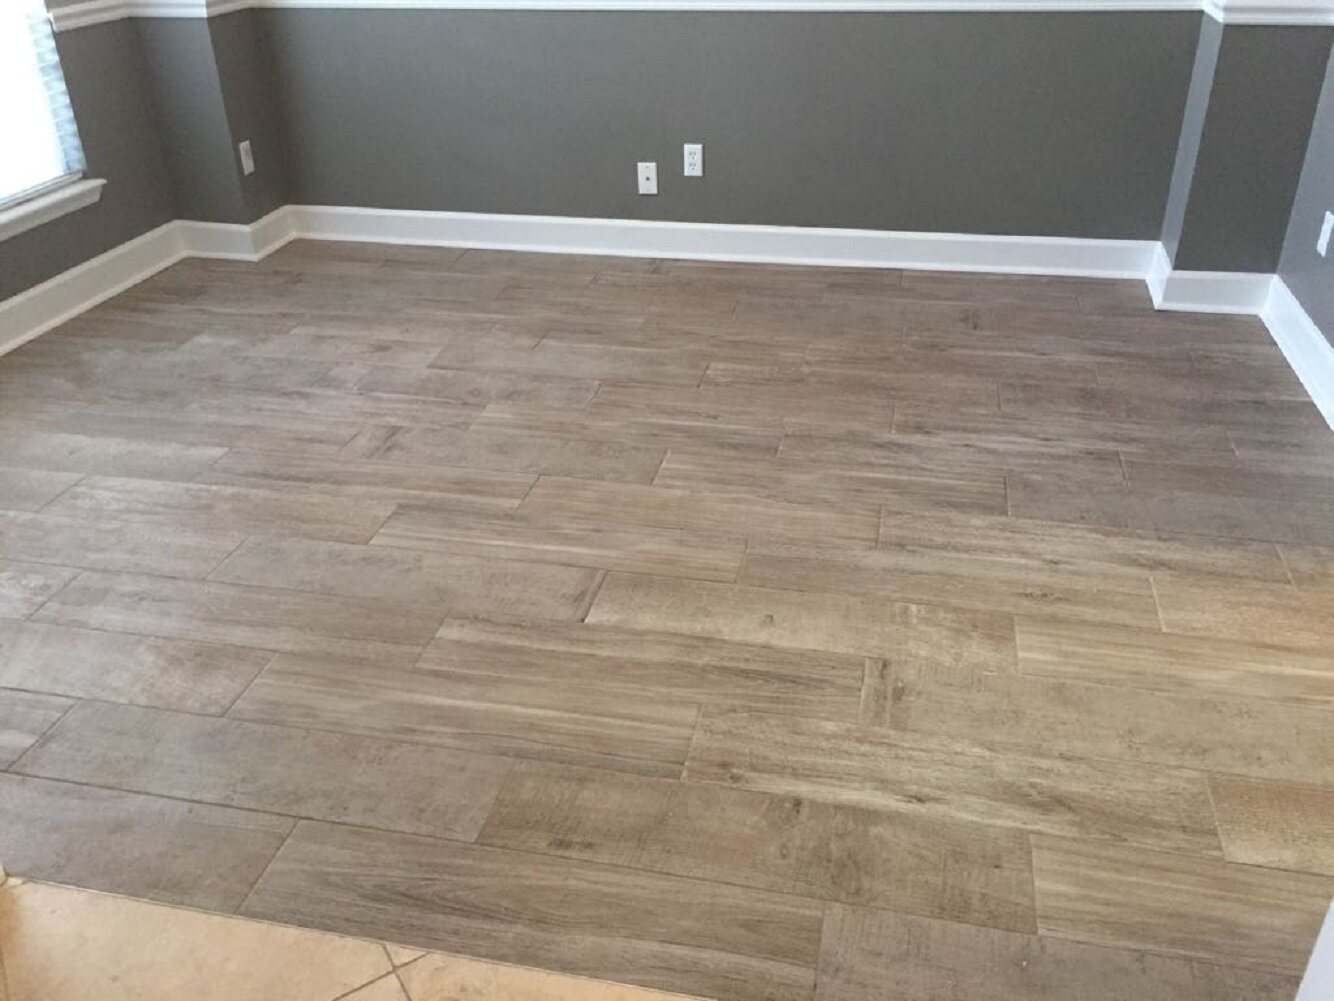 Ocala 8 X 33 Porcelain Wood Look Tile